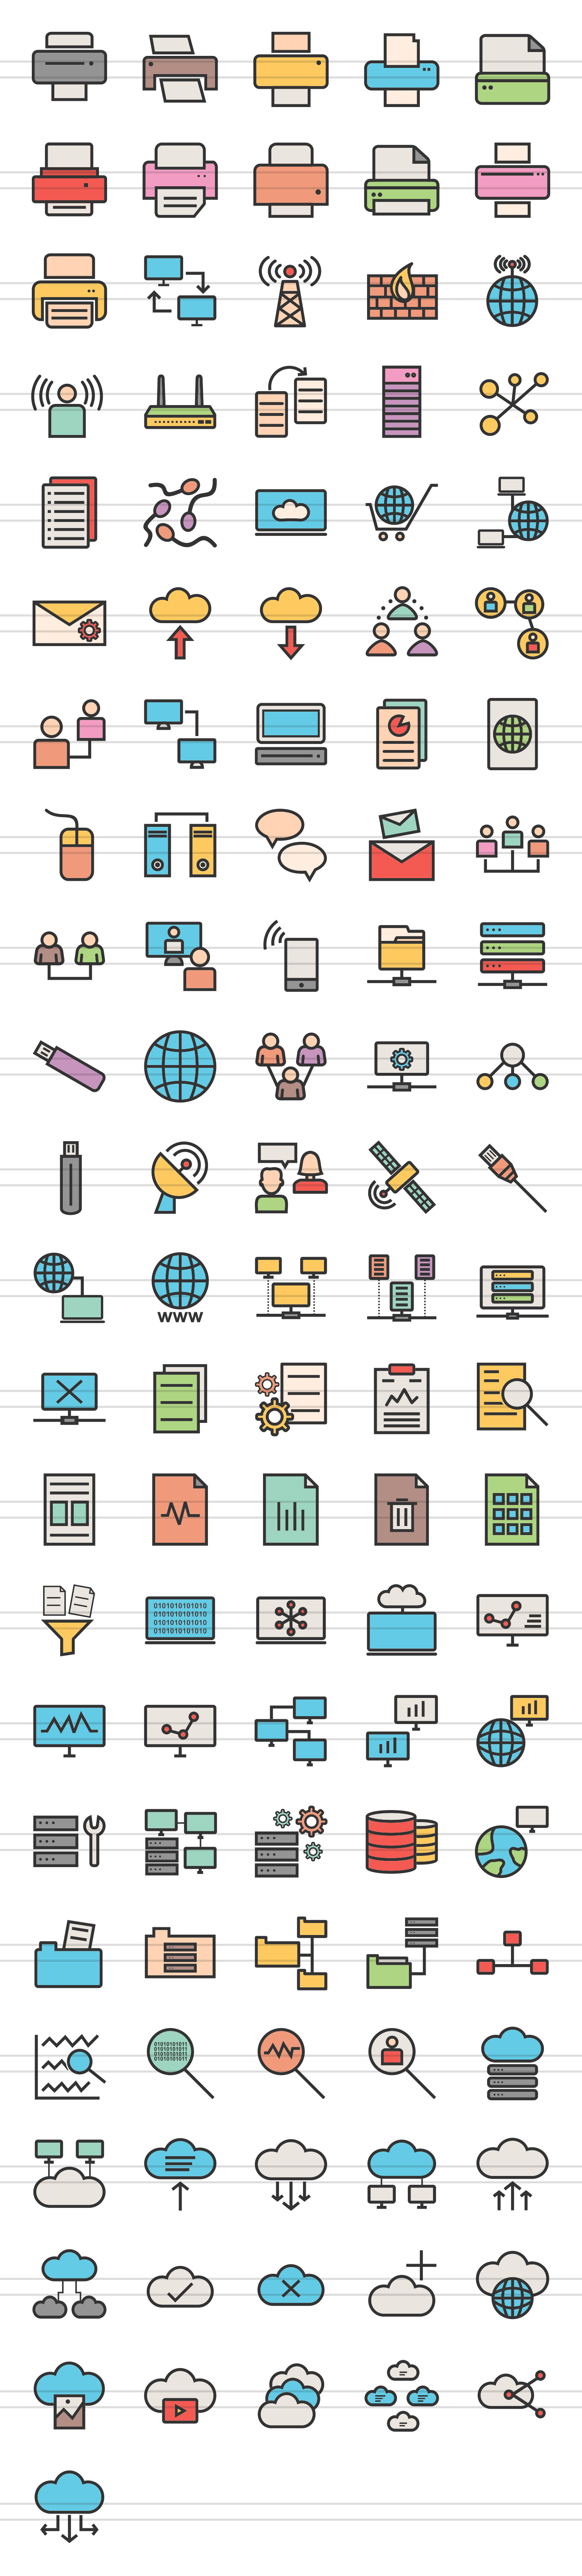 111 Networking & Printers Filled Line Icons example image 2